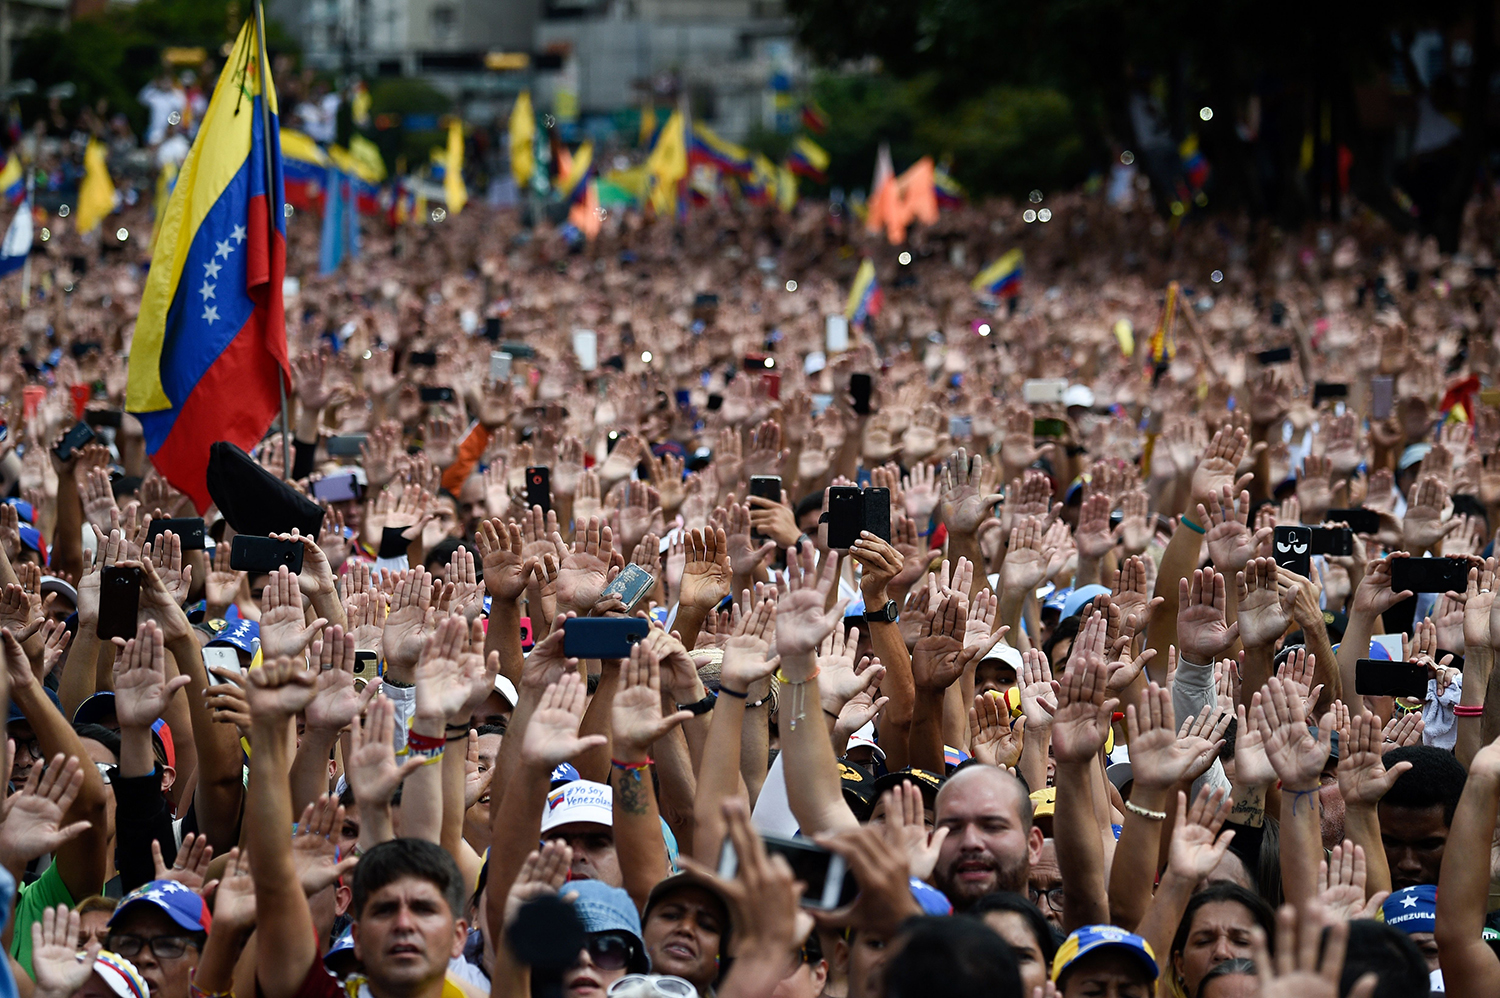 VENEZUELA | People raise their hands during a mass opposition rally against President Nicolas Maduro in Caracas on Jan. 23. FEDERICO PARRA/AFP via Getty Images